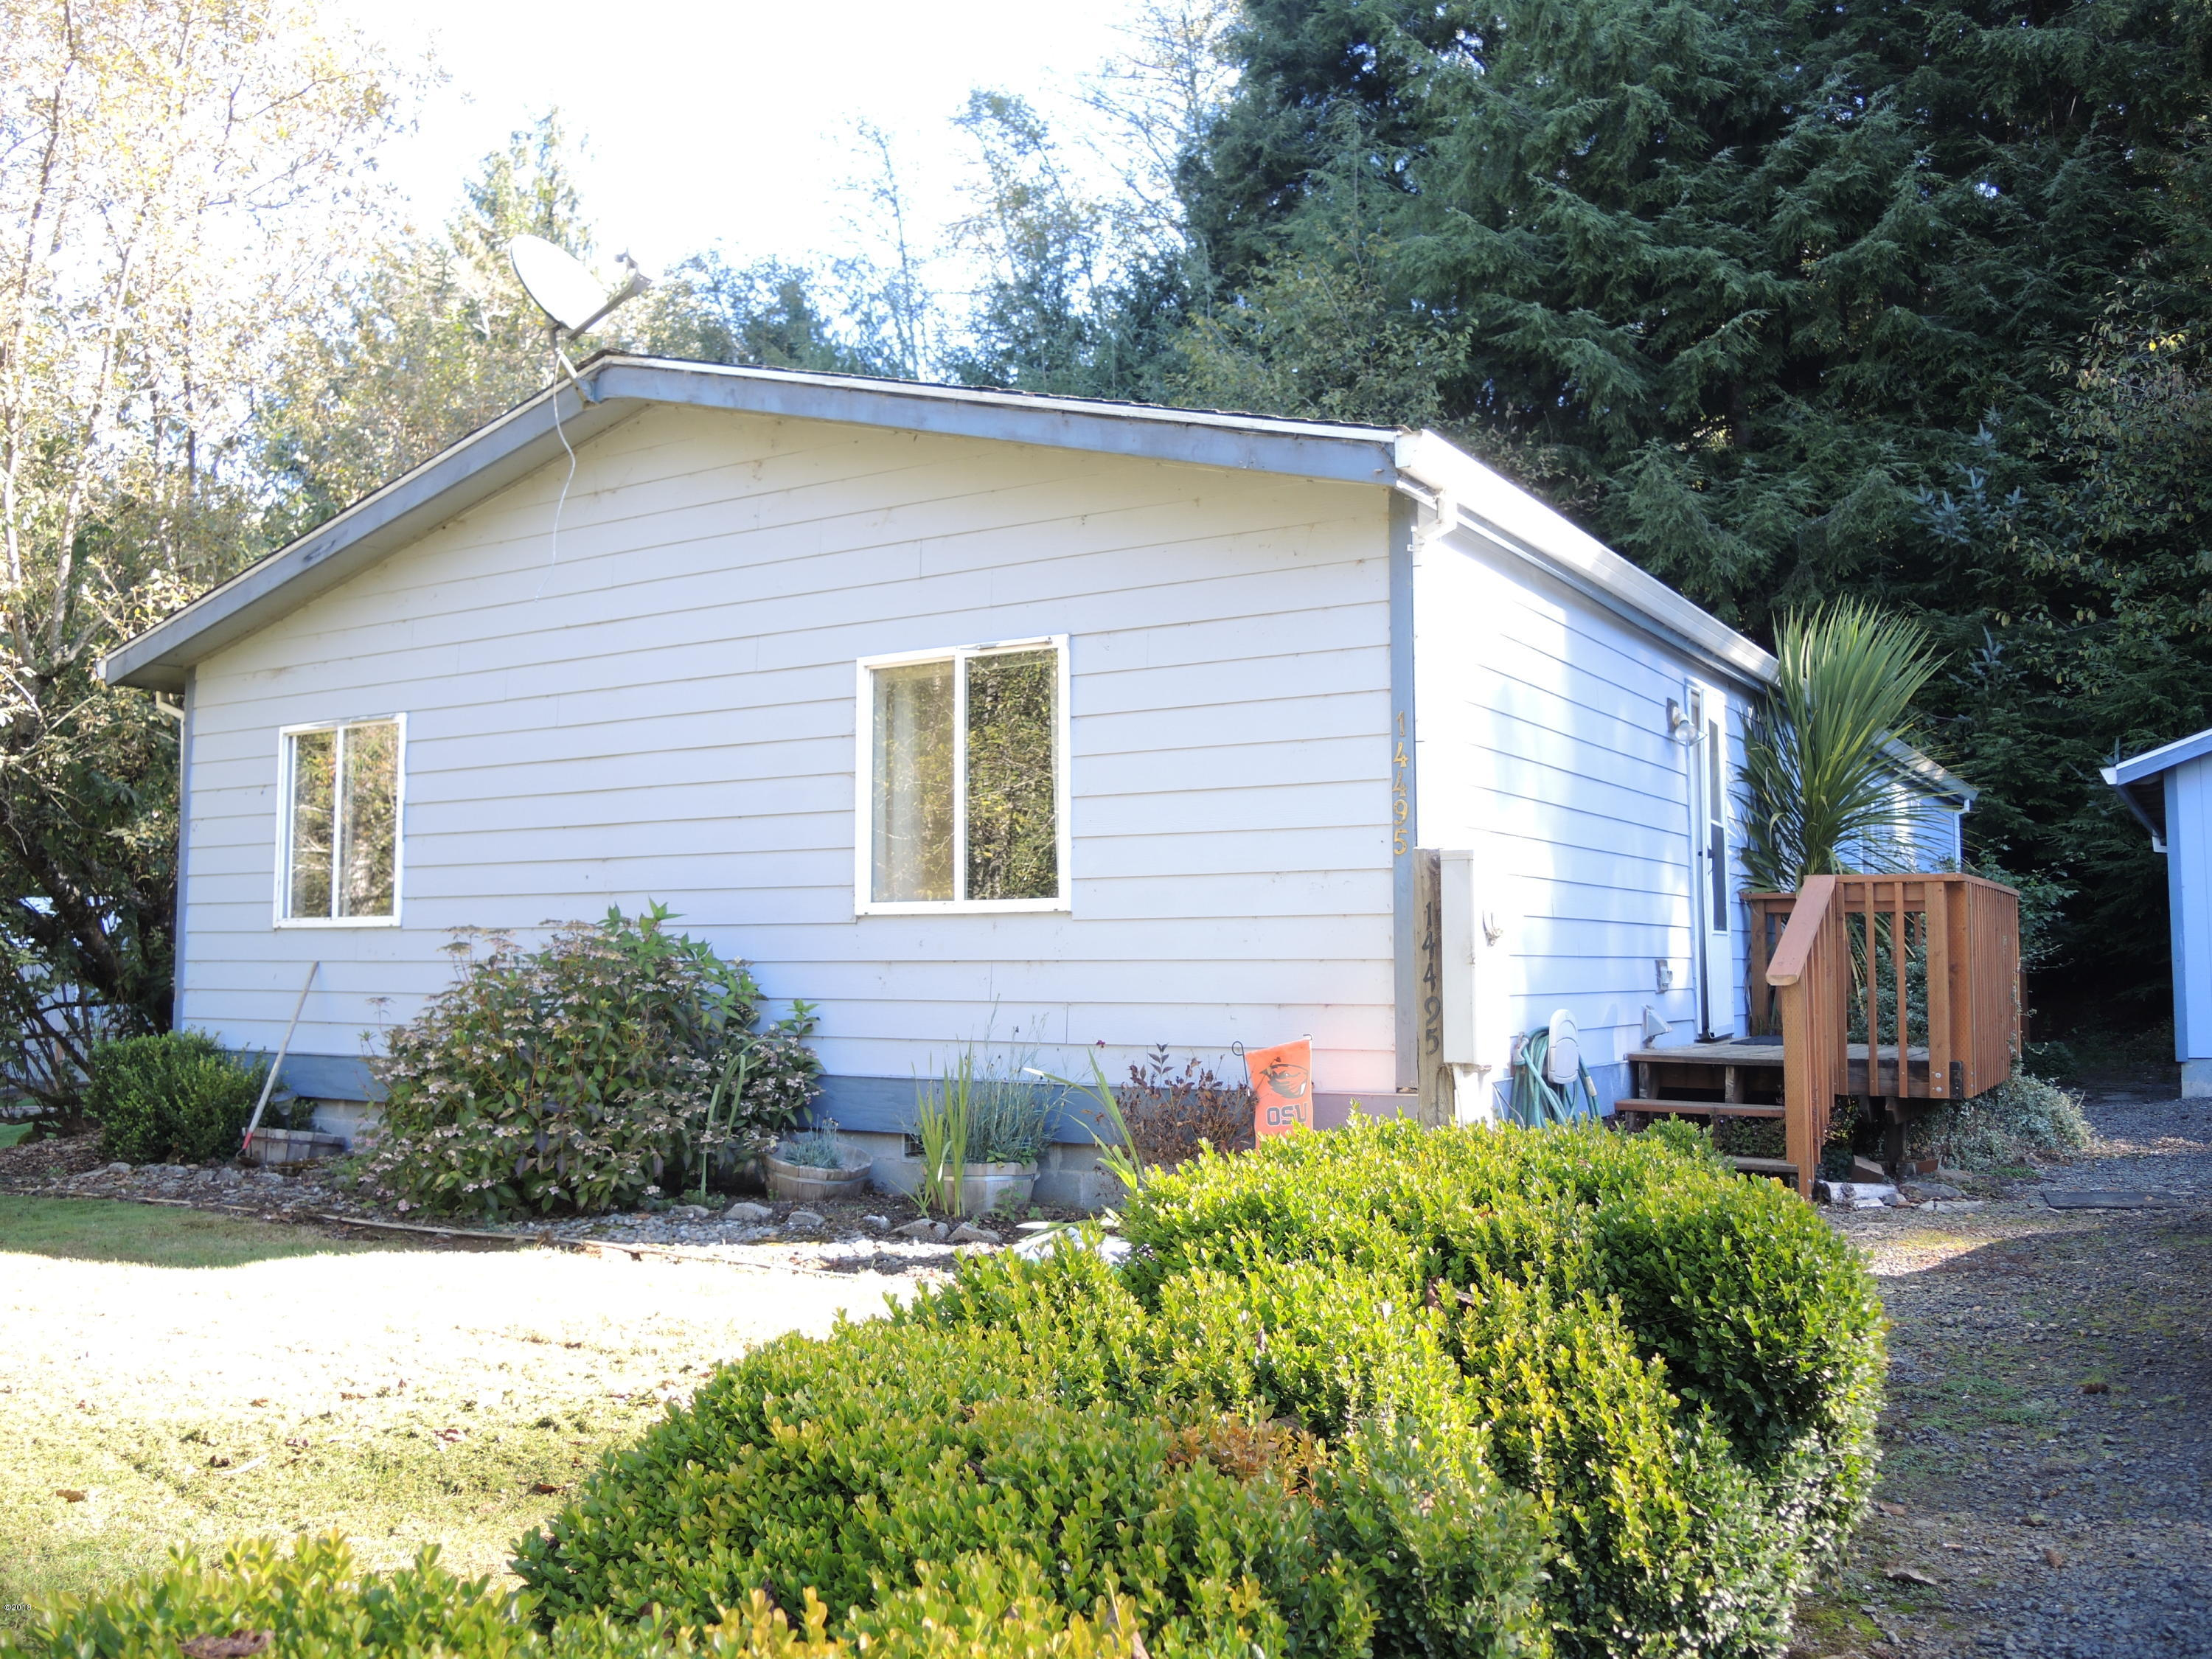 14495 Misty Dr, Cloverdale, OR 97112